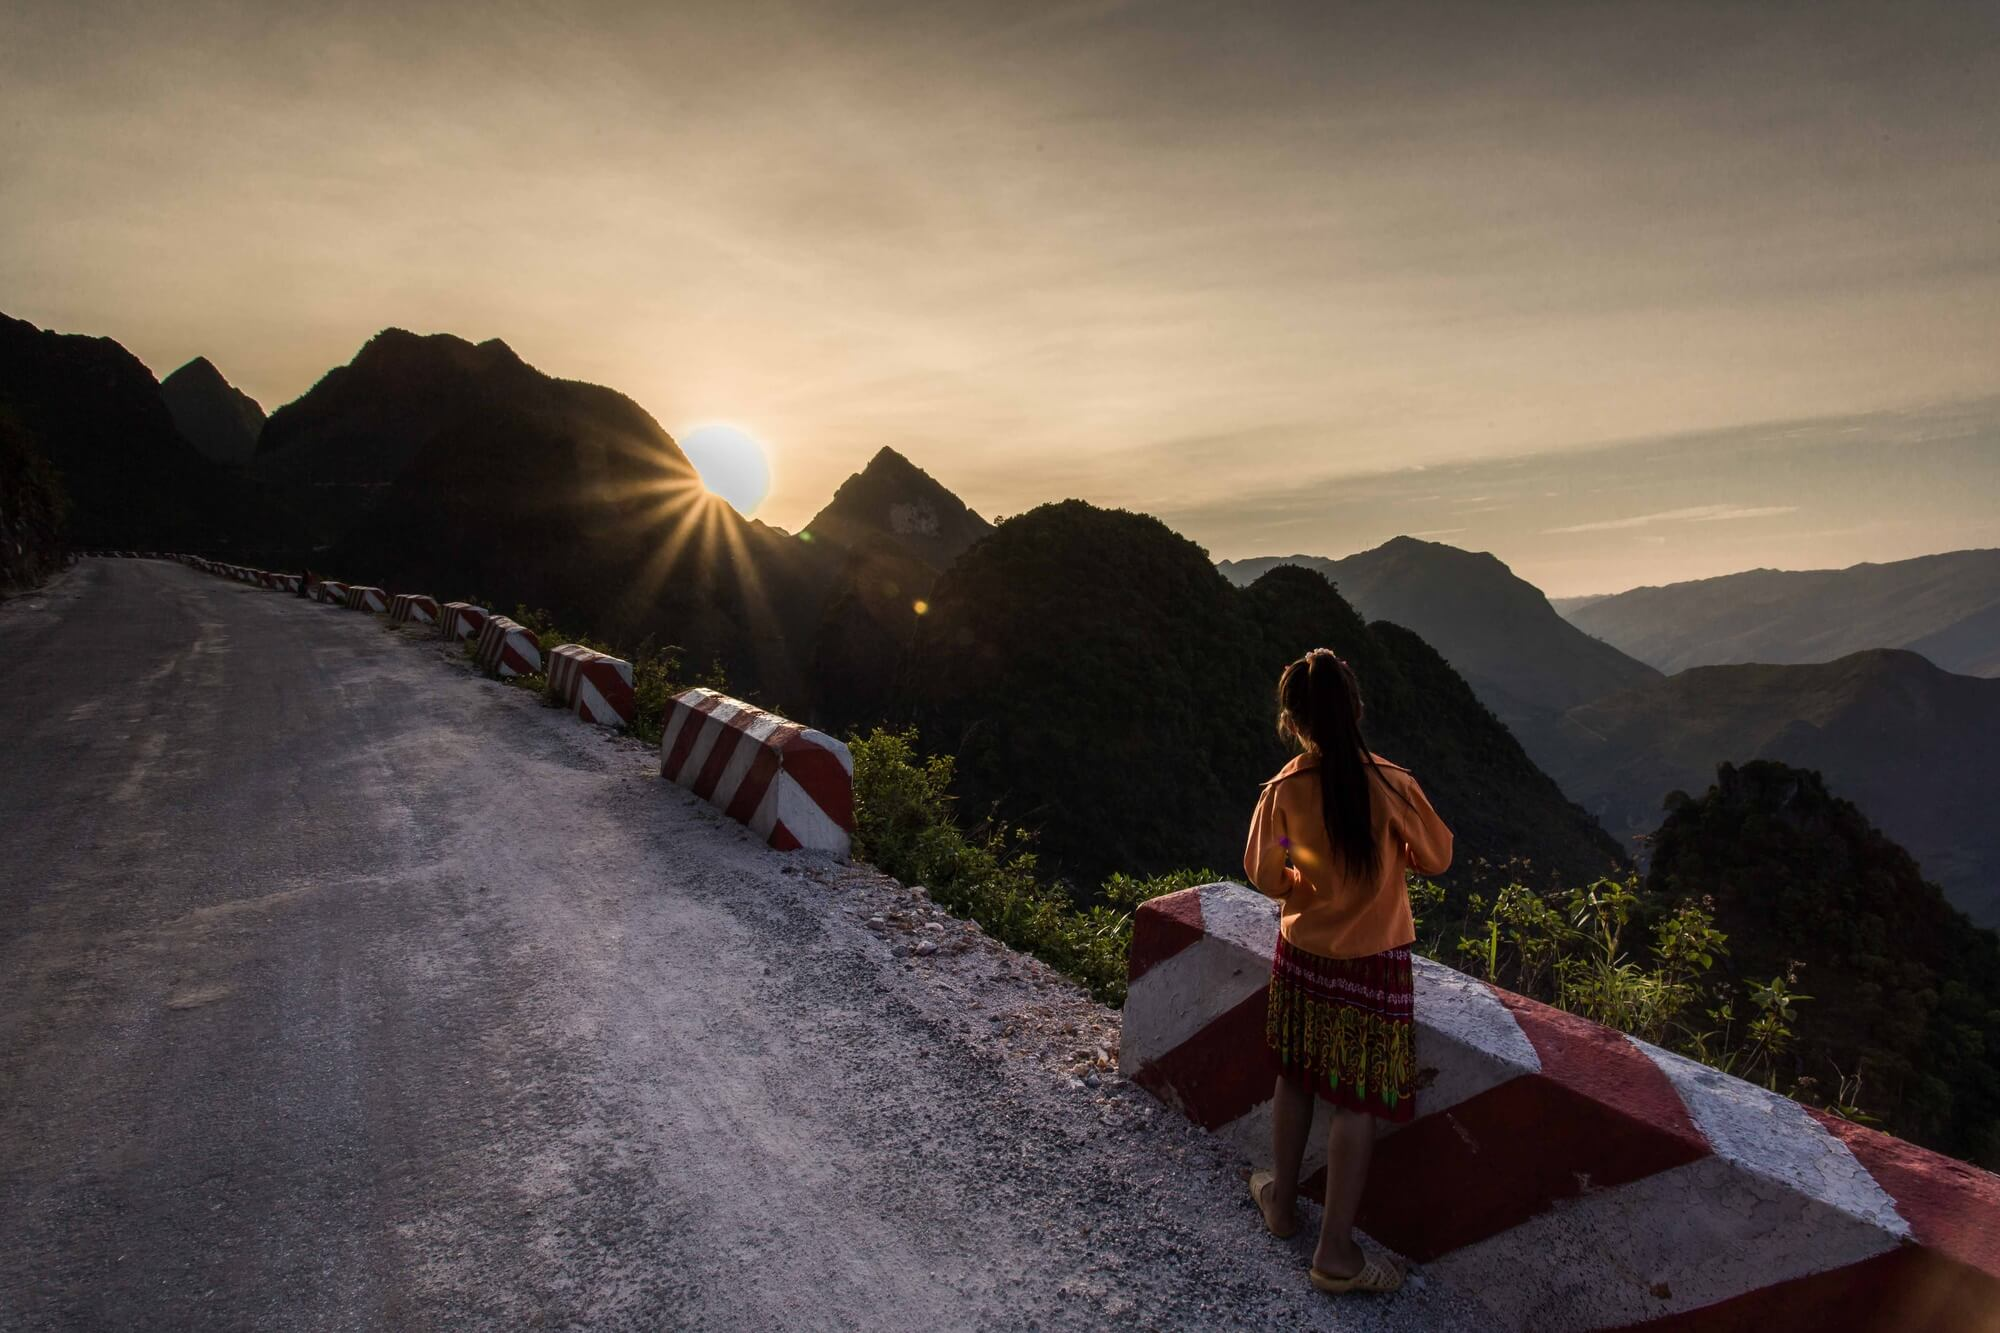 Vietnam minority girl on mountain passage watching the setting sun